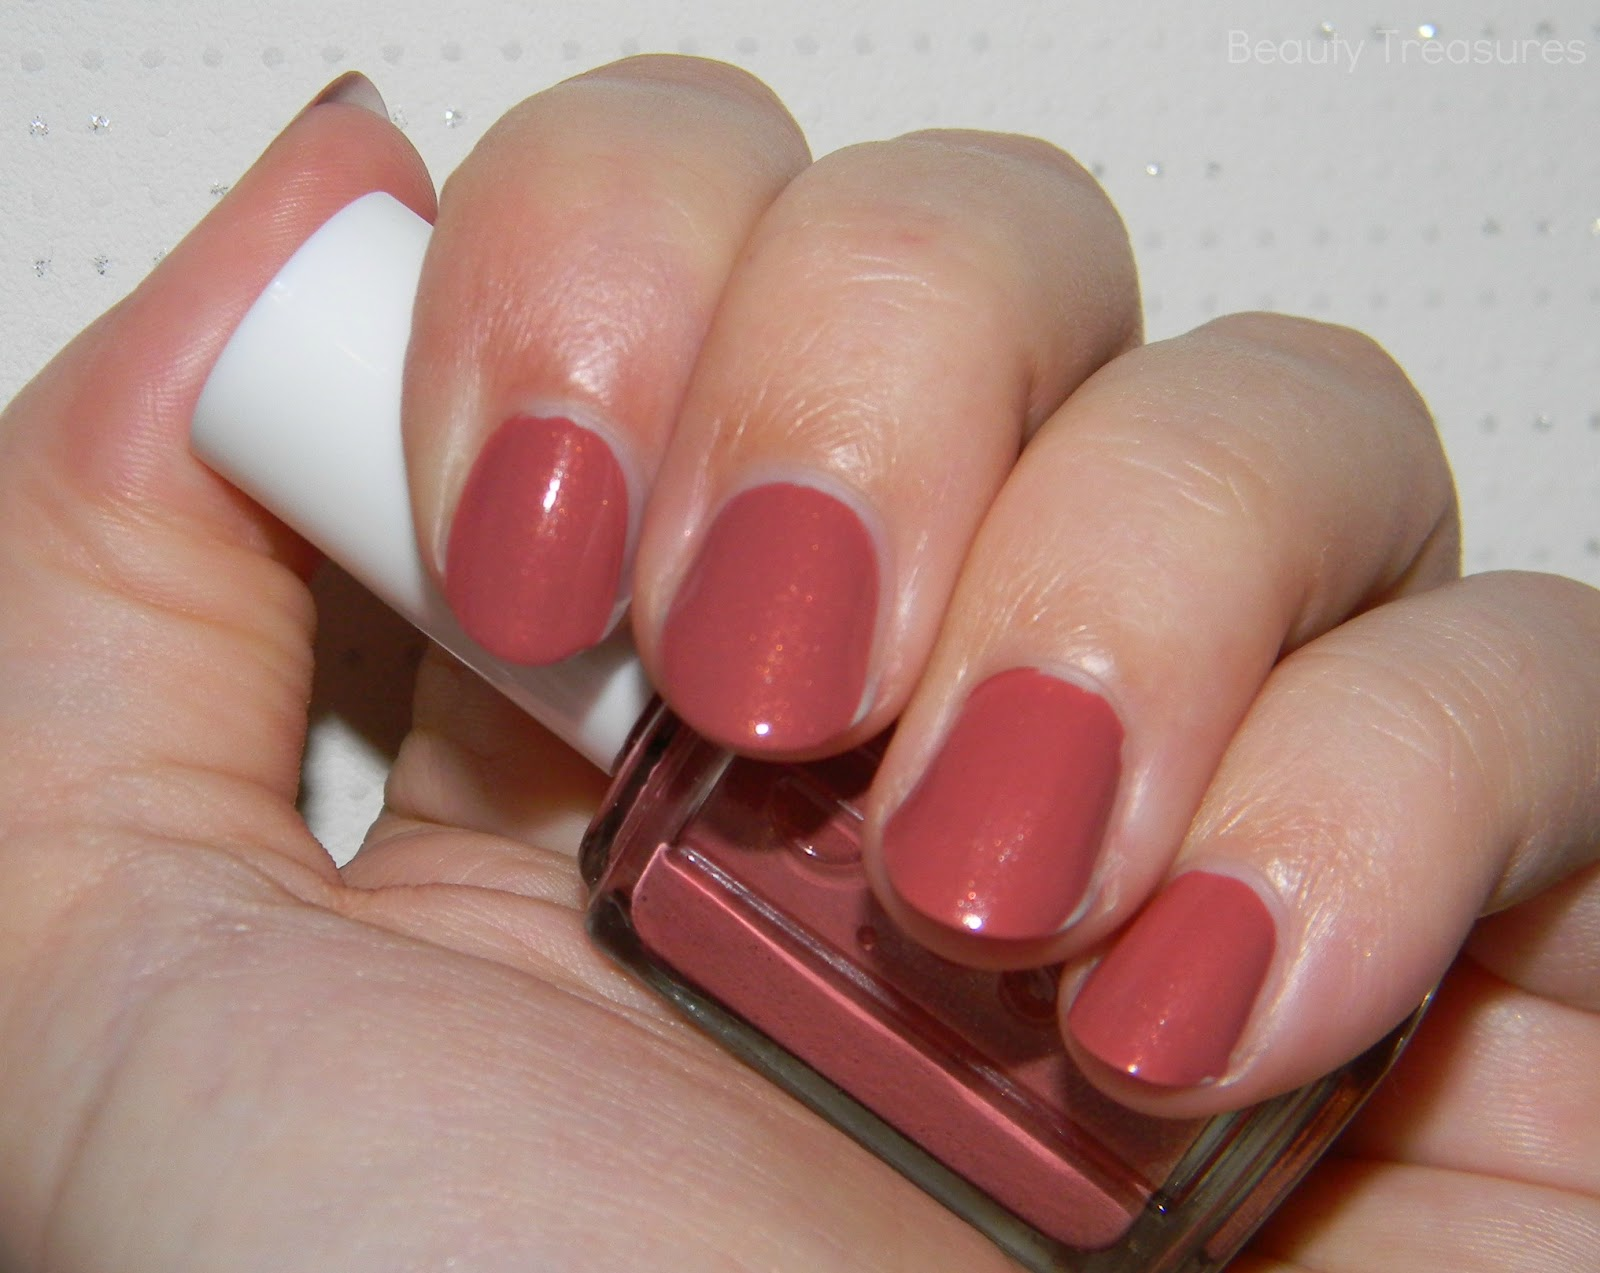 Essie zomer collectie swatches beauty treasures - Kleur warme kleur cool ...